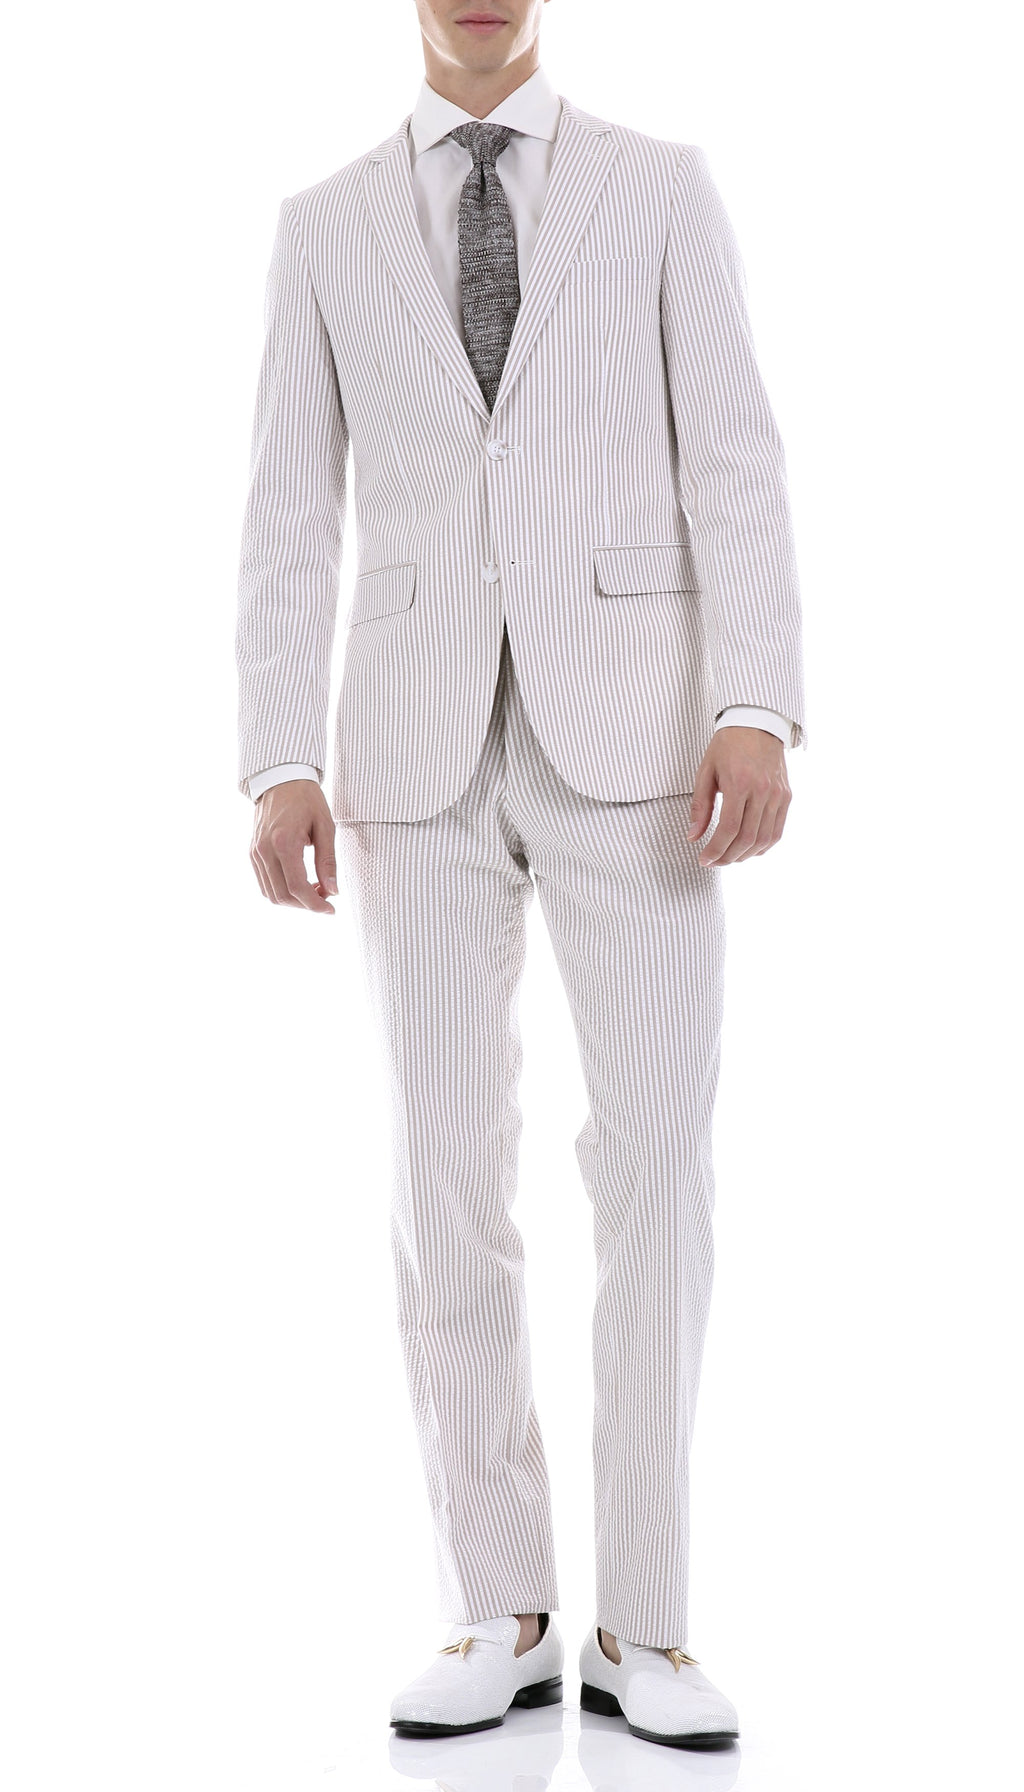 Premium Comfort Cotton Slim Tan Seersucker Suit - Giorgio's Menswear